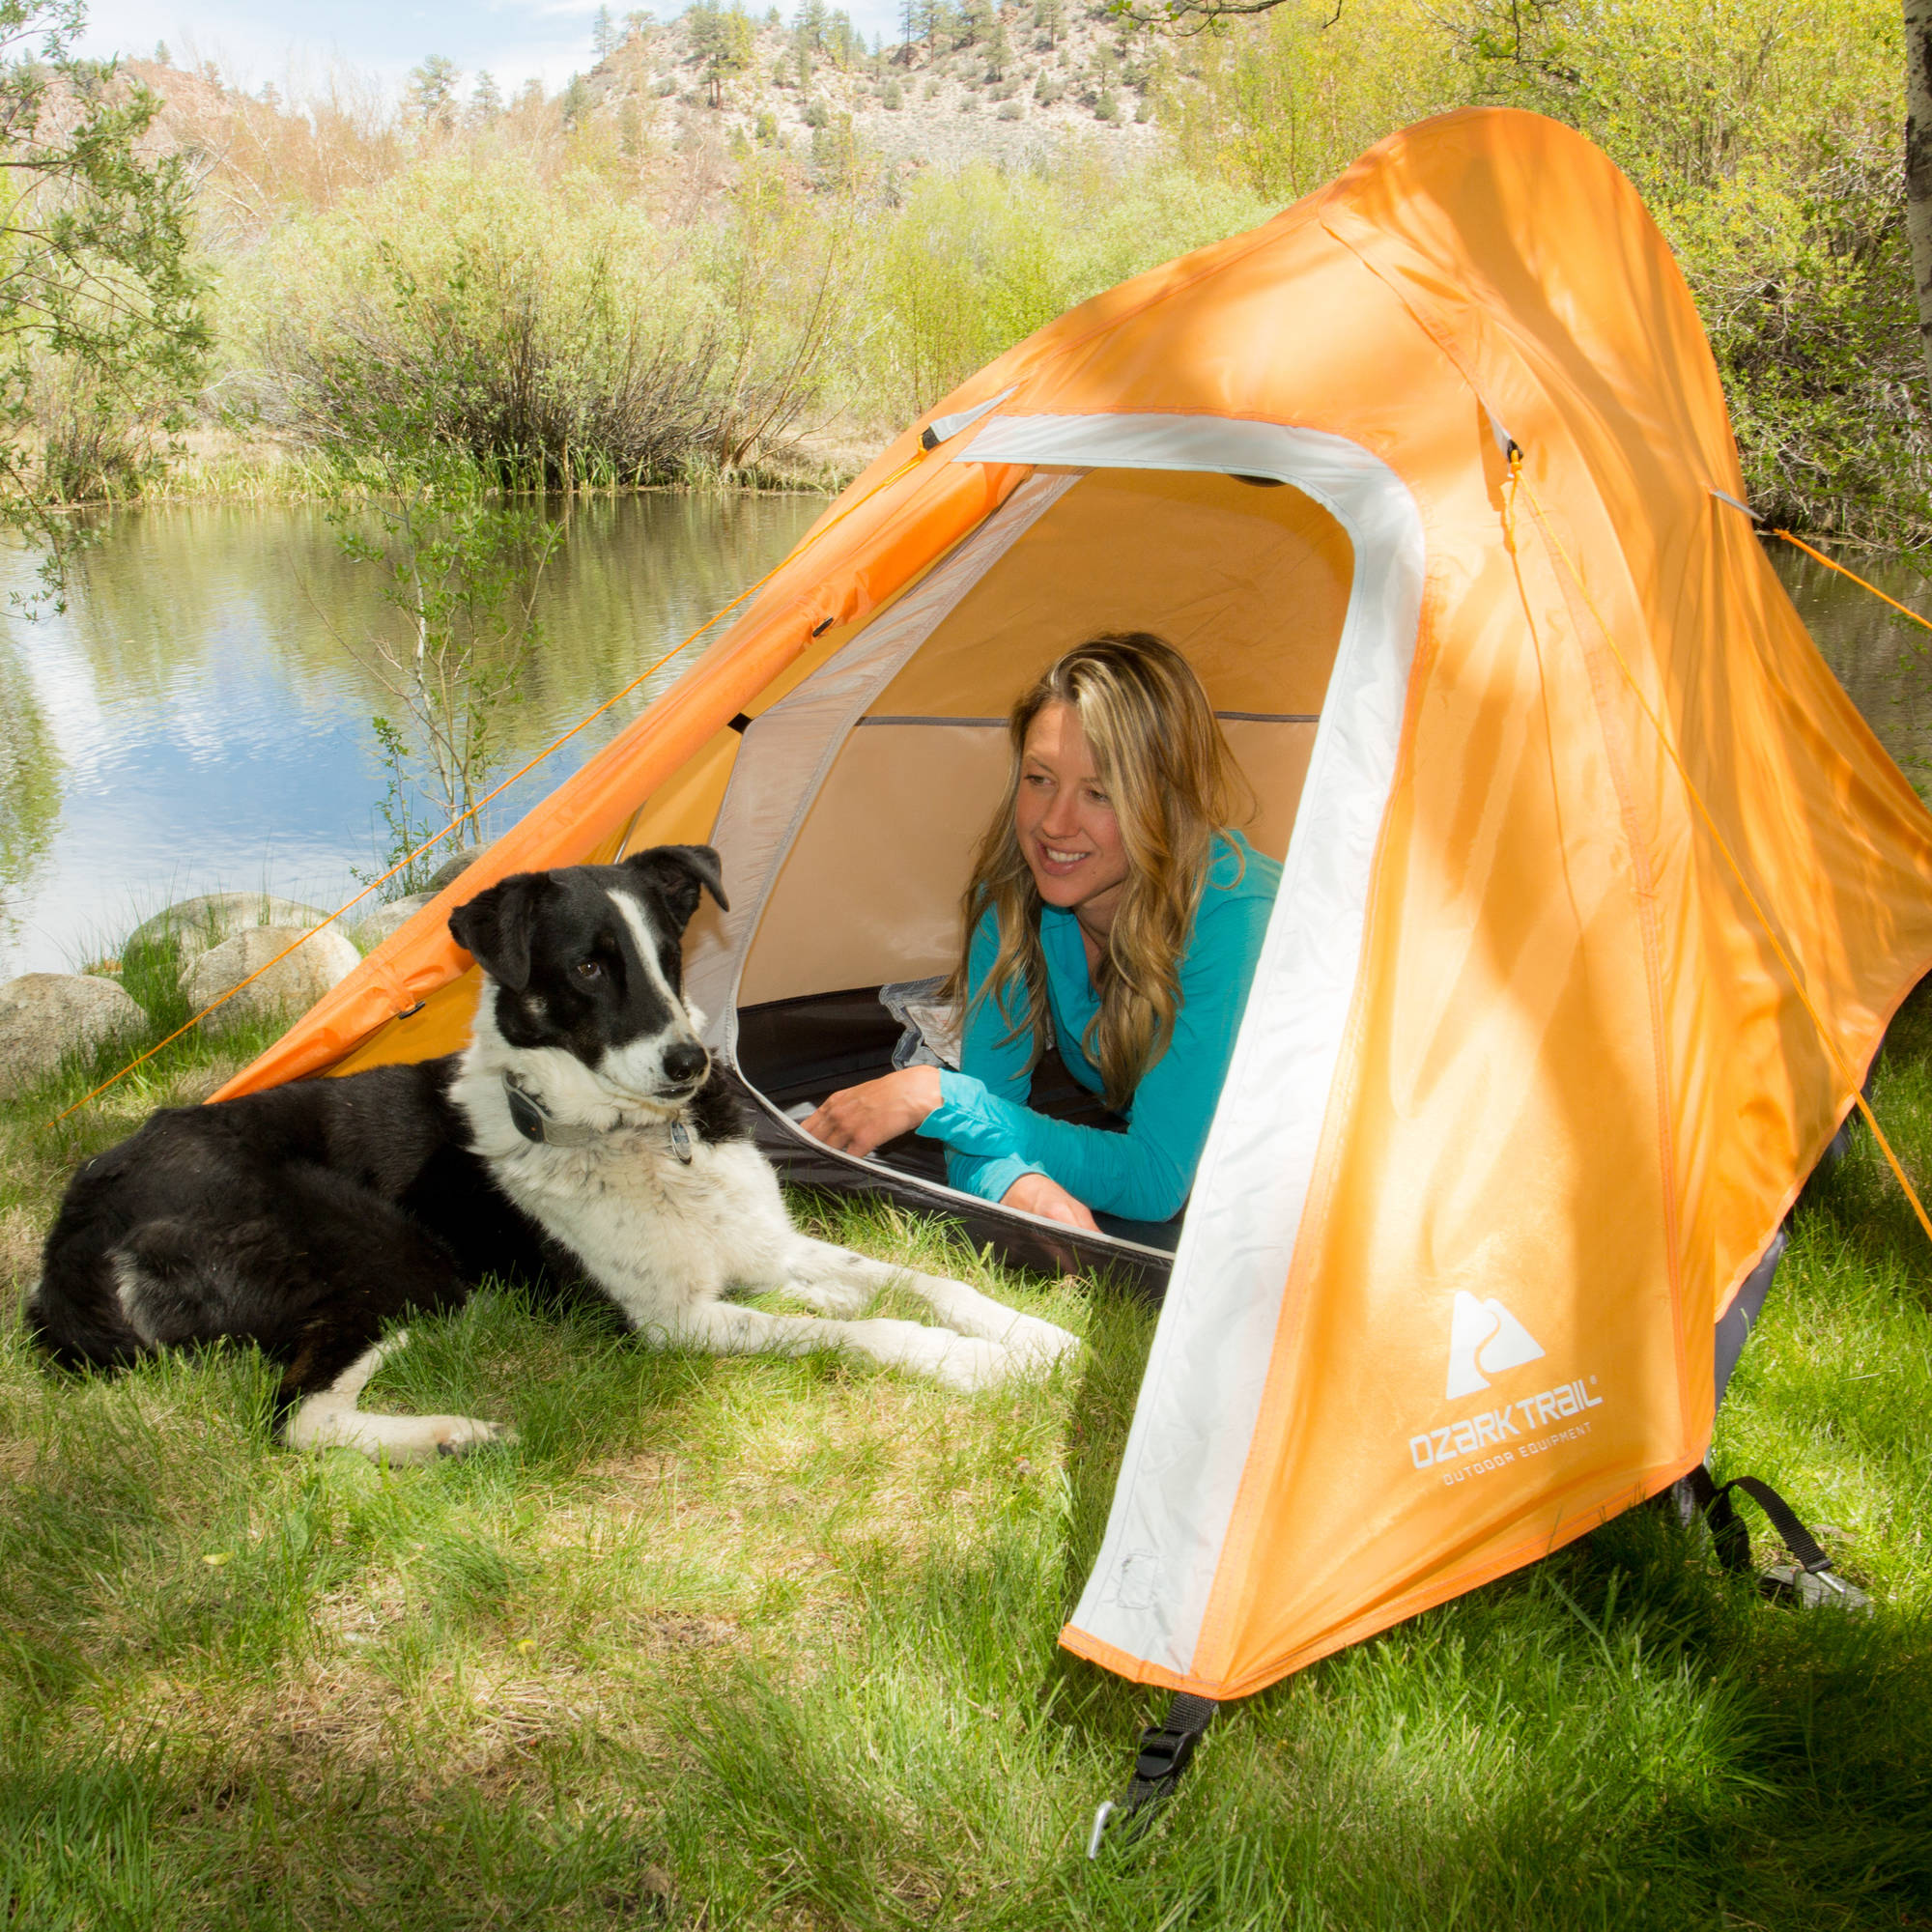 Ozark Trail Ultralight Back Packing 4u0027 x 7u0027 x 42  Tent with Full Fly Sleeps 1 Orange - Walmart.com & Ozark Trail Ultralight Back Packing 4u0027 x 7u0027 x 42